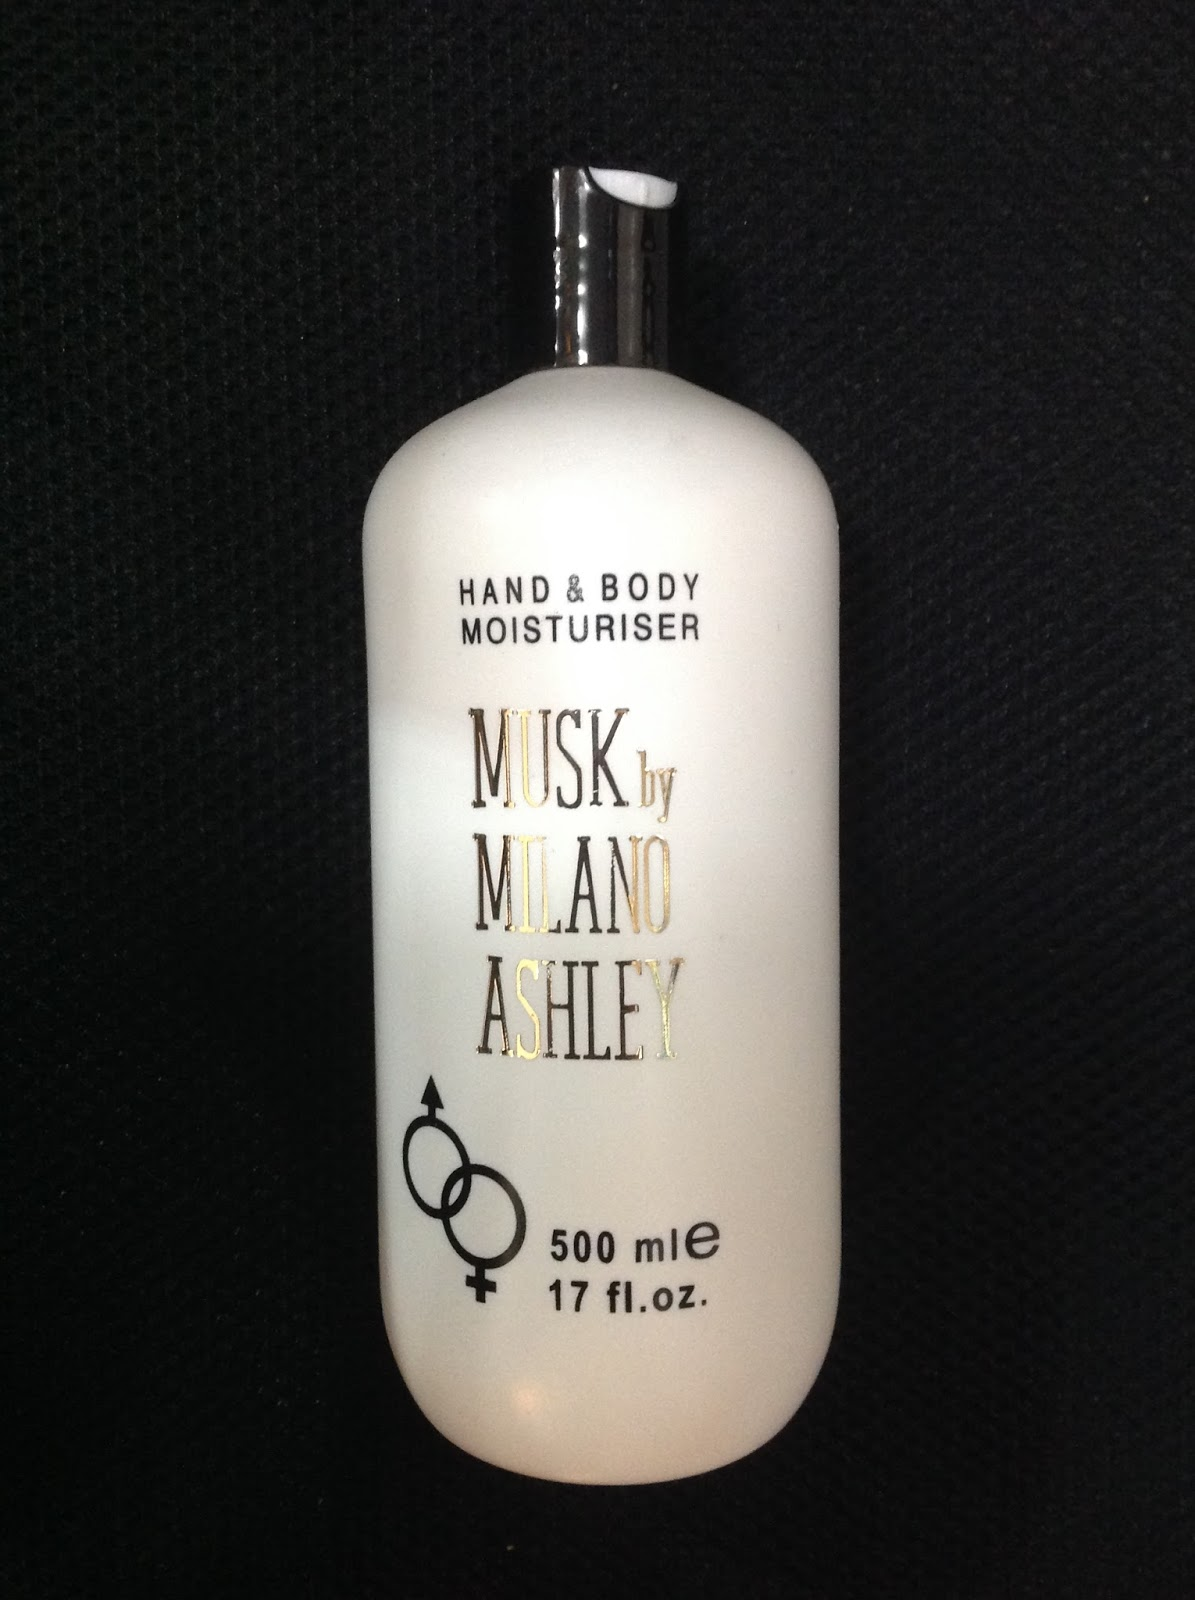 Hand Body Moisturiser 500ml Musk By Milano Ashley Cek Harga Alyssa Original Made In Italy 750 Ml E Rp358000 Lusin